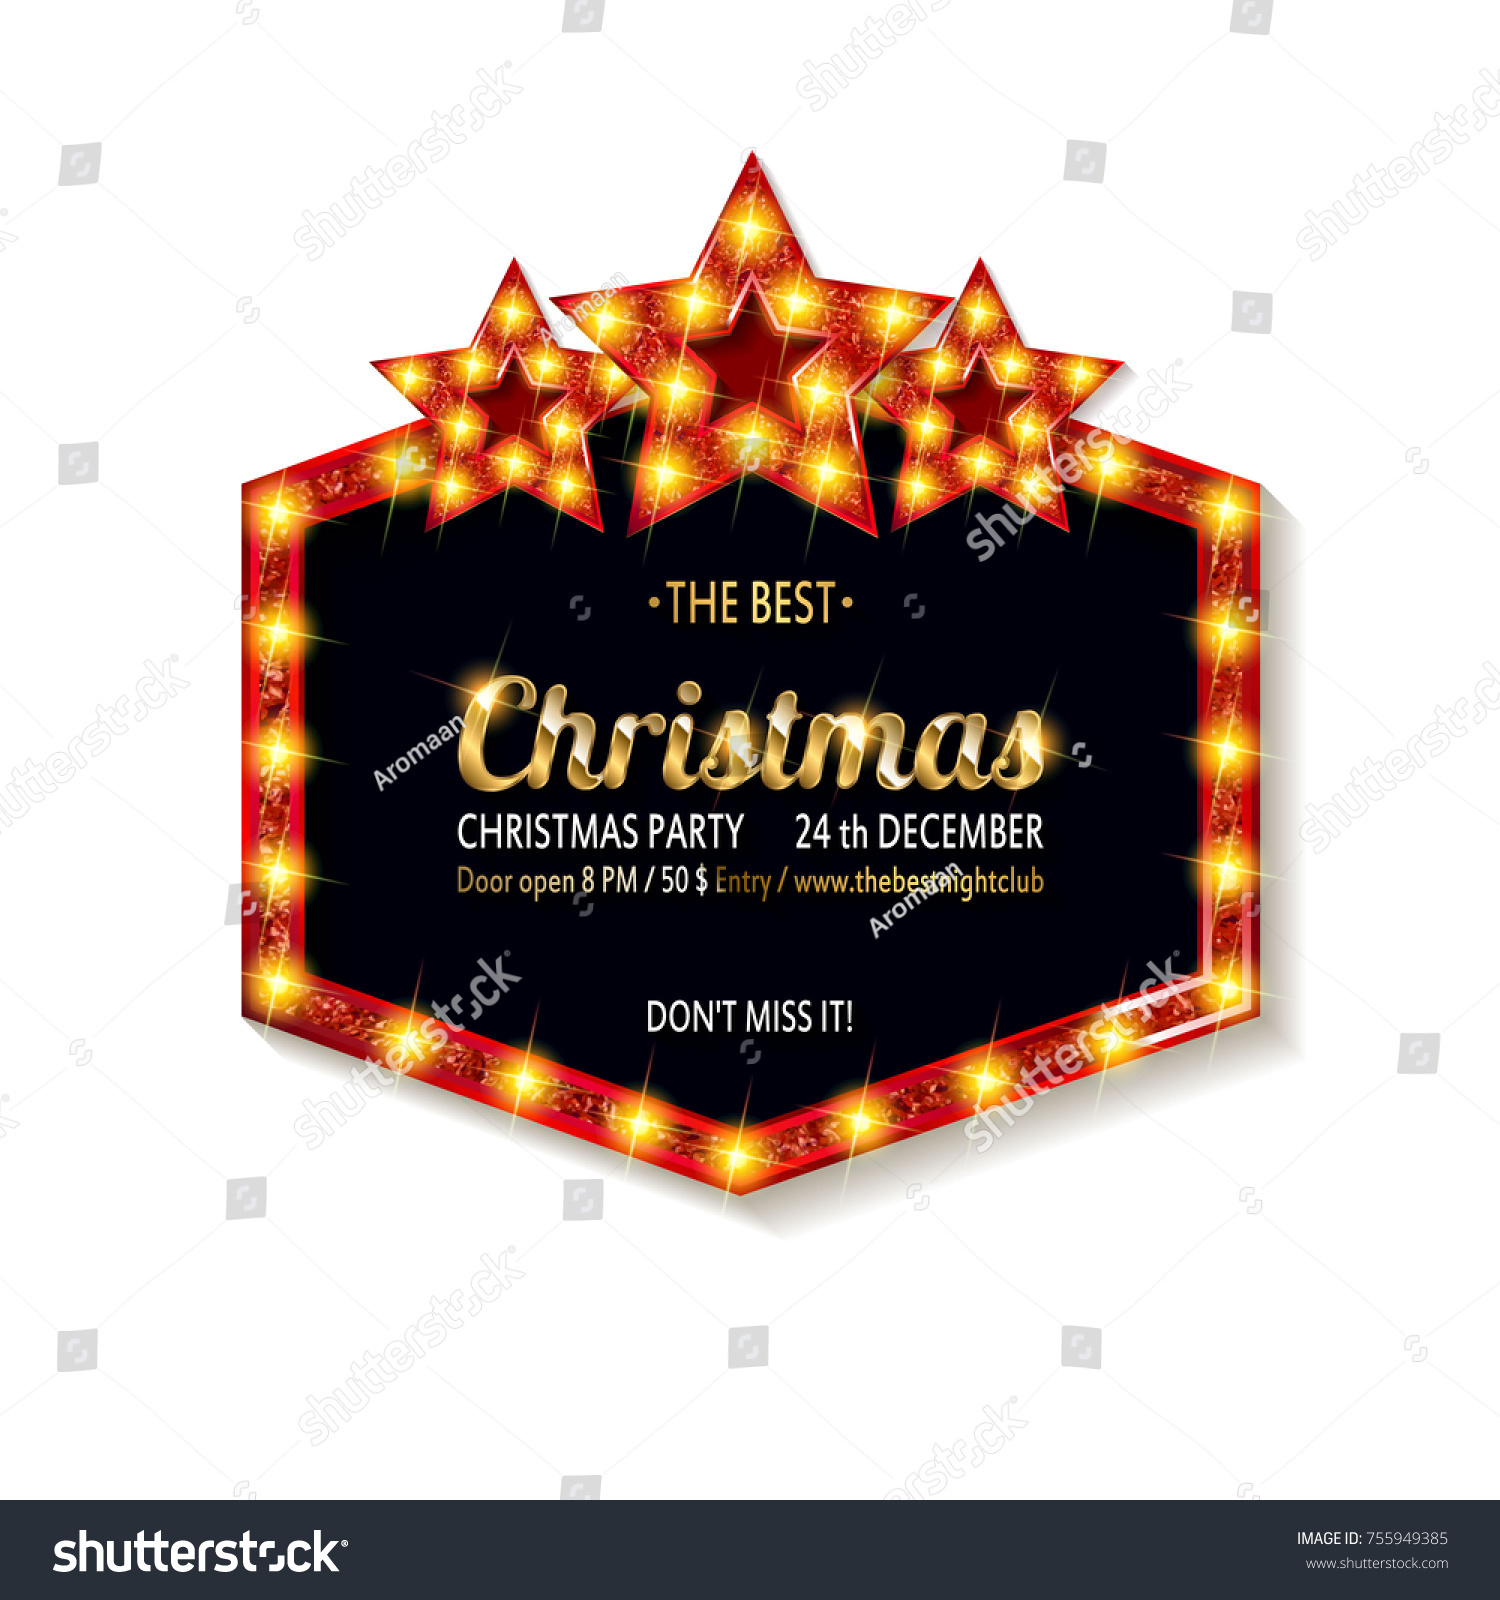 Vector Christmas Party Invitation Holiday Background Stock Vector ...